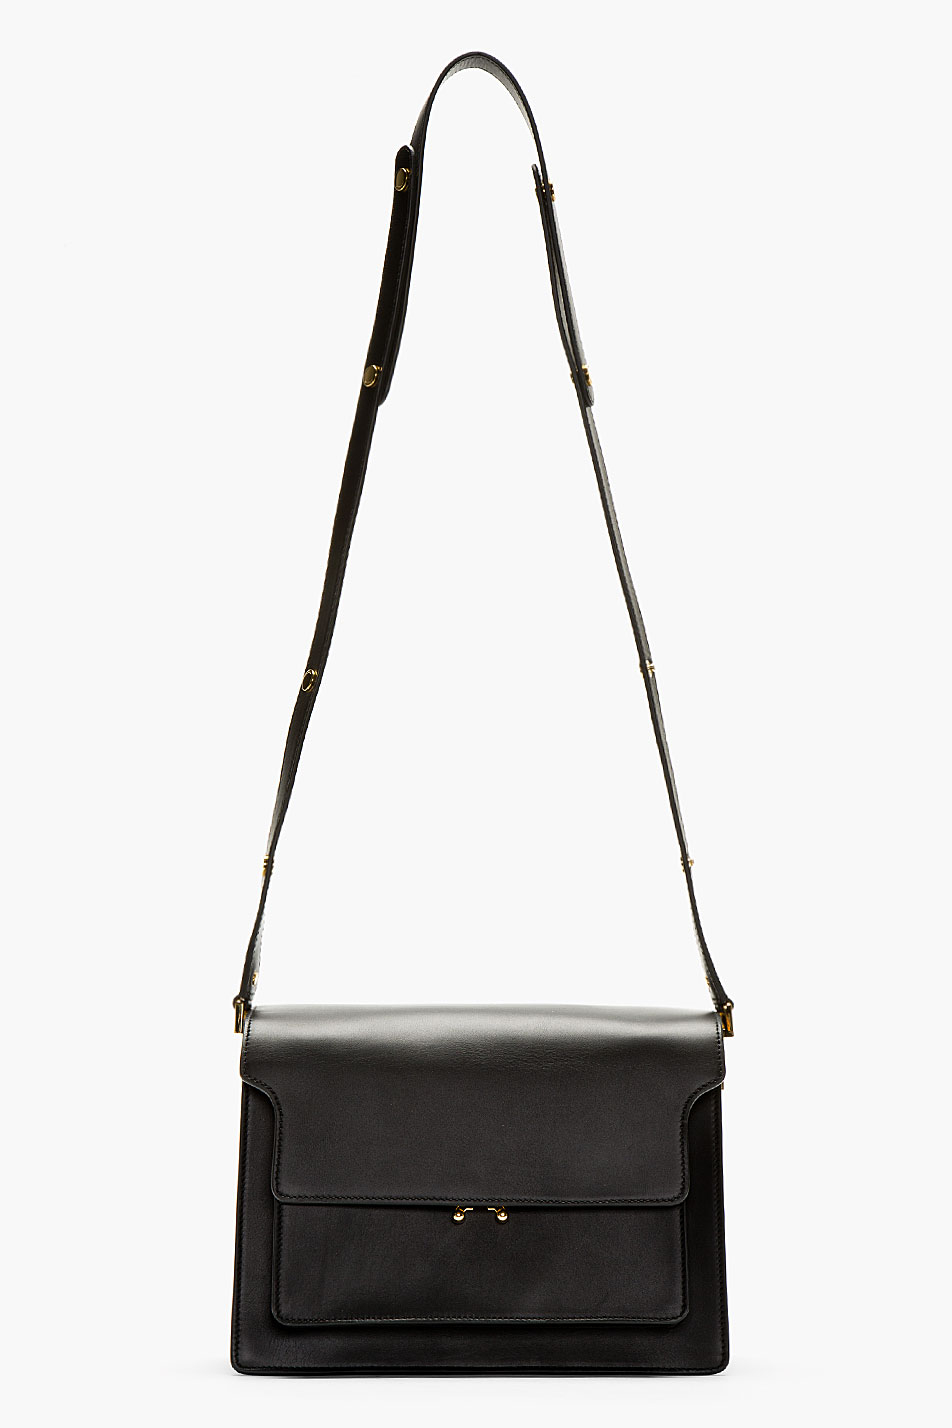 Marni Black Leather Small Shoulder Bag in Black | Lyst